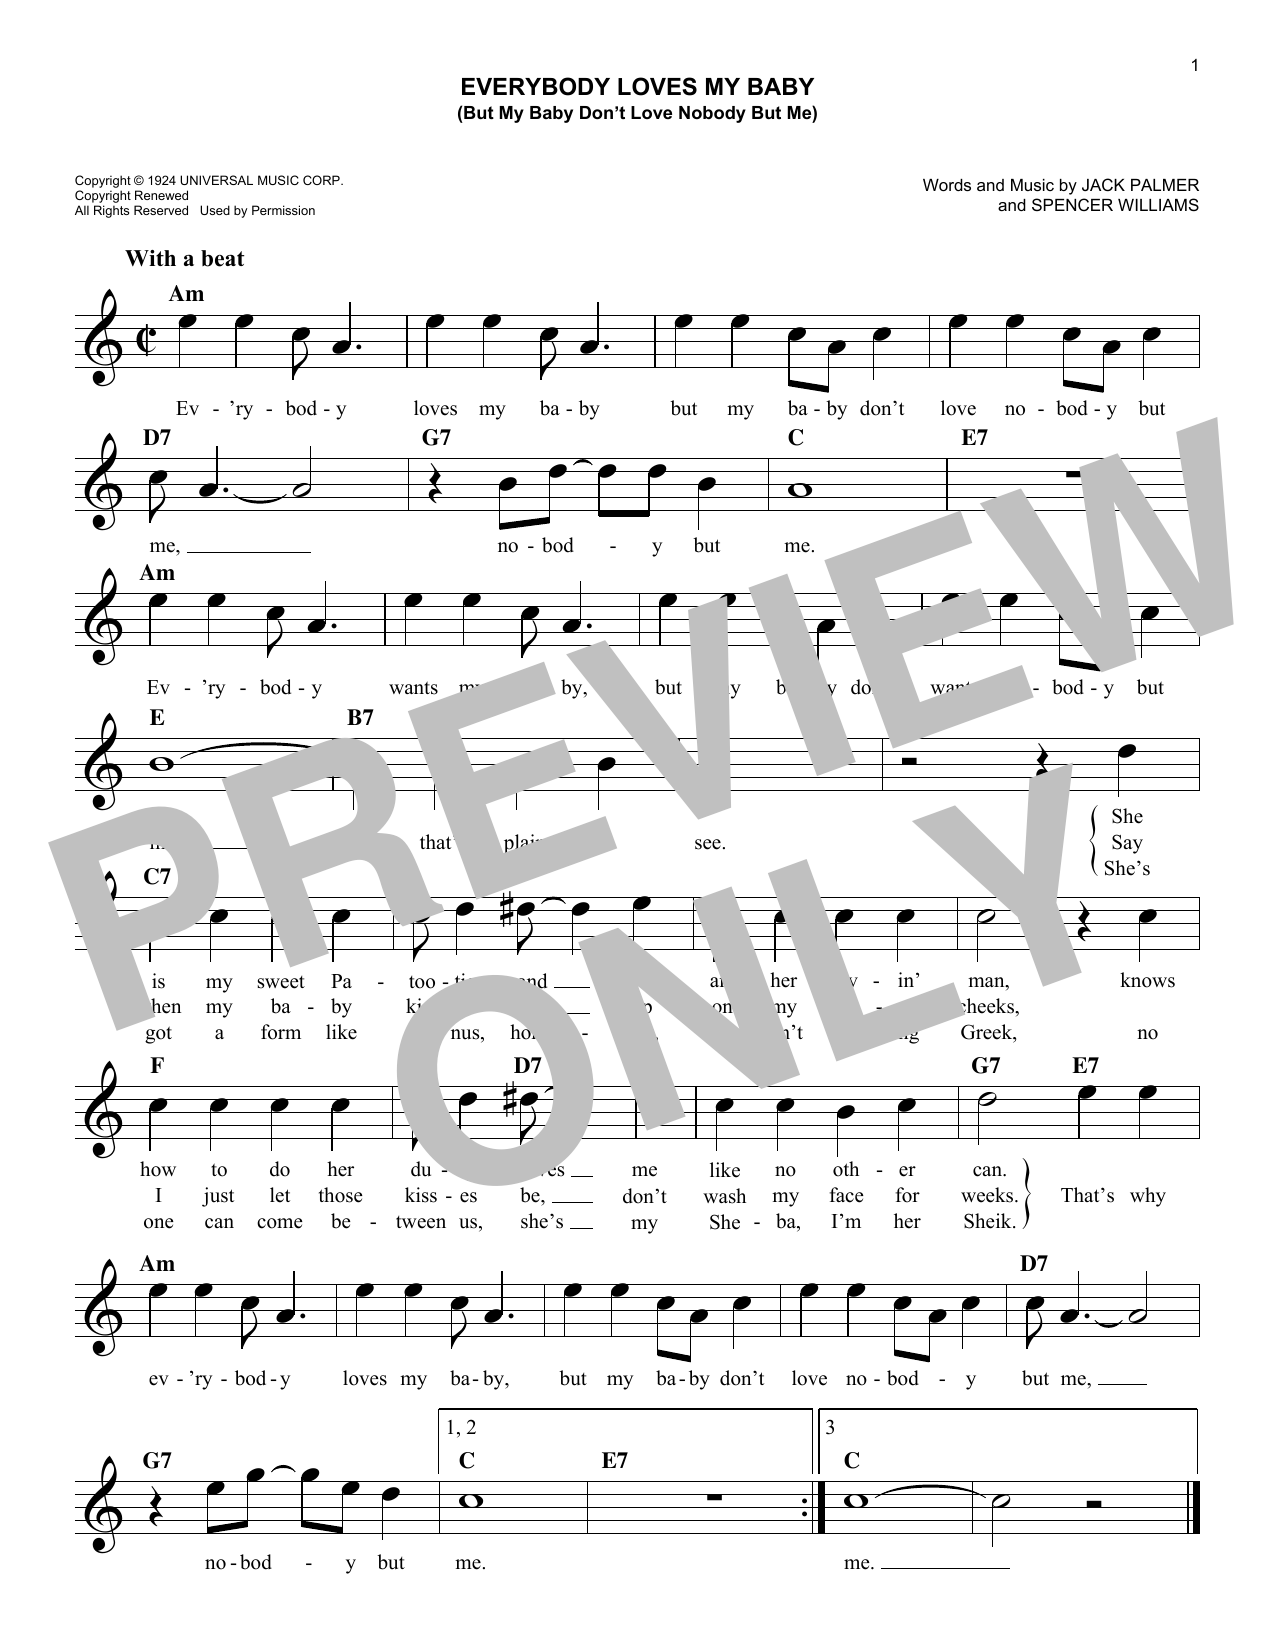 Spencer Williams Everybody Loves My Baby But My Baby Don T Love Nobody But Me Sheet Music Pdf Notes Chords Jazz Score Real Book Melody Lyrics Chords C Instruments You can also use the lyrics scroller to sing along with the music and adjust the speed by using the arrows. spencer williams everybody loves my baby but my baby don t love nobody but me sheet music notes chords download printable real book melody